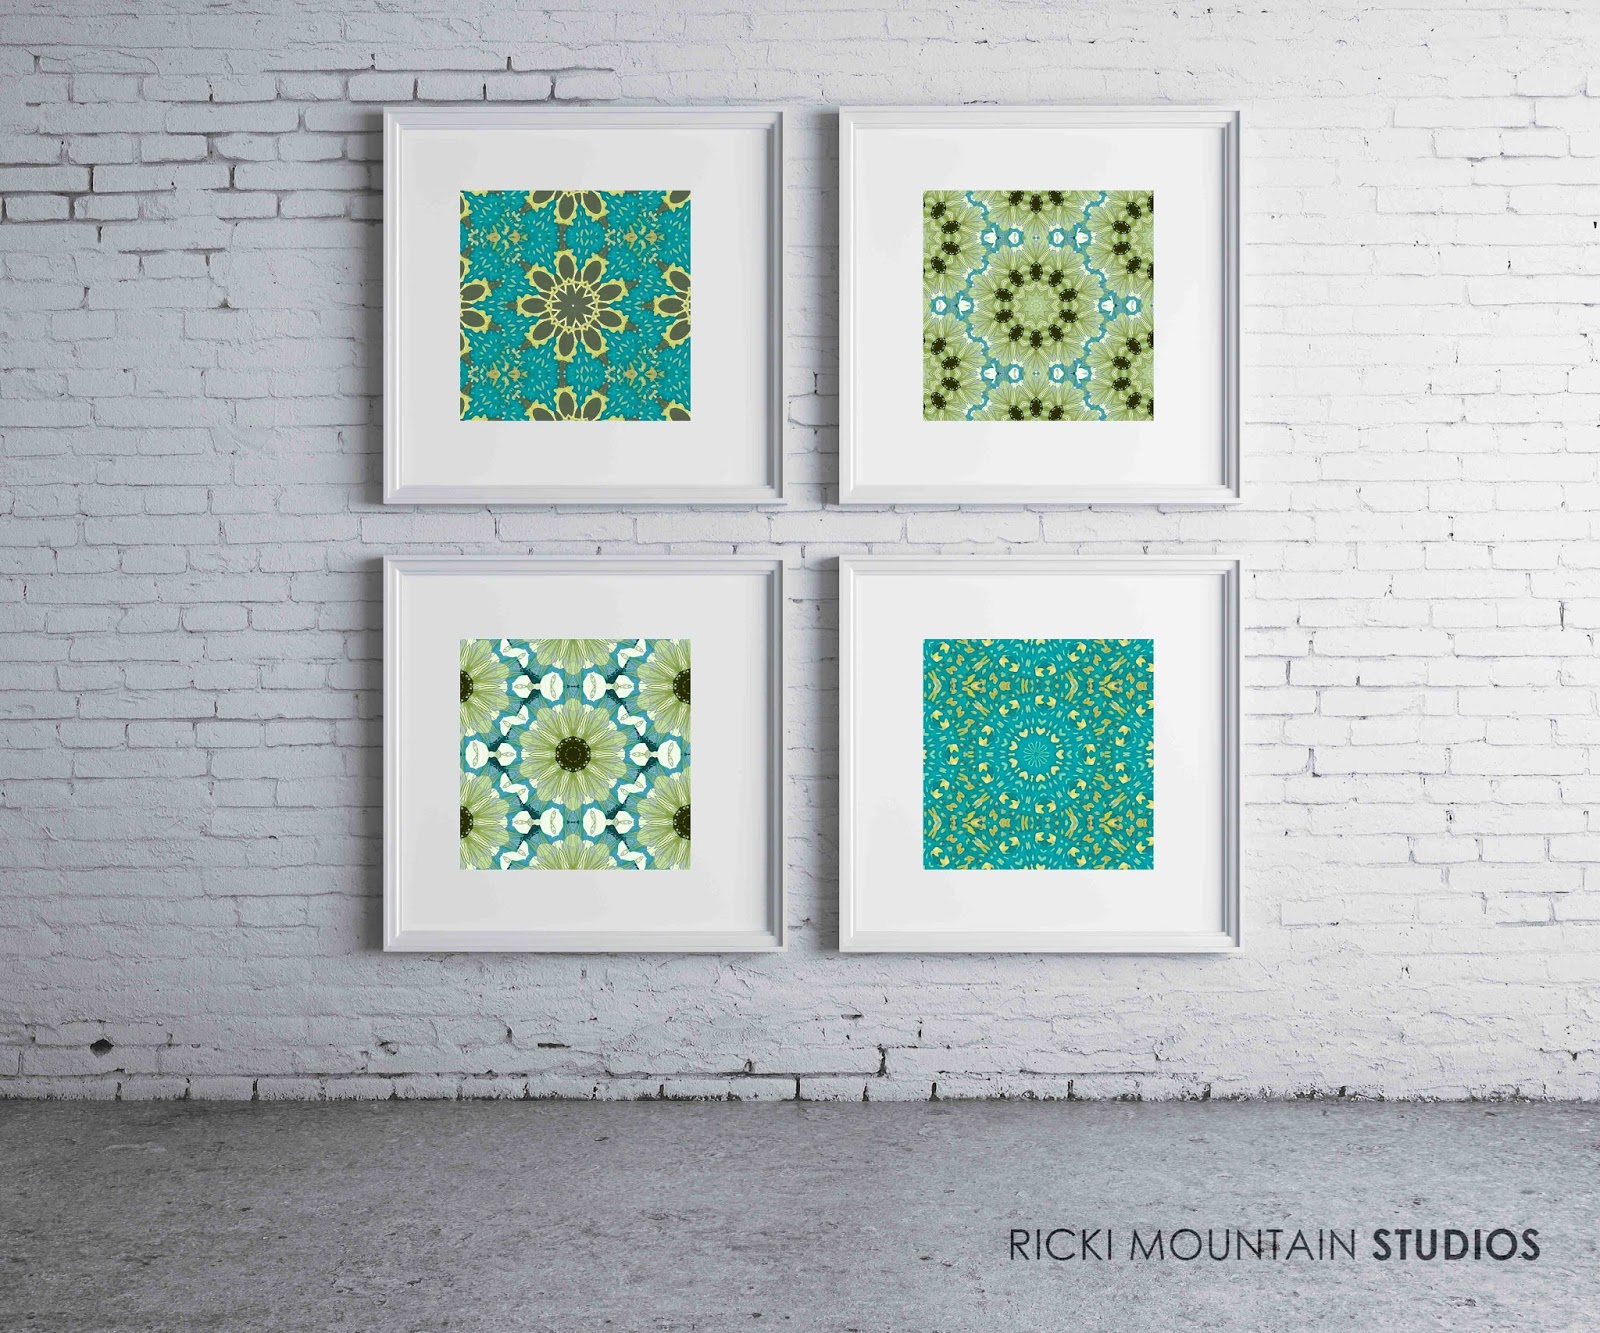 A love of symmetry, pattern and color